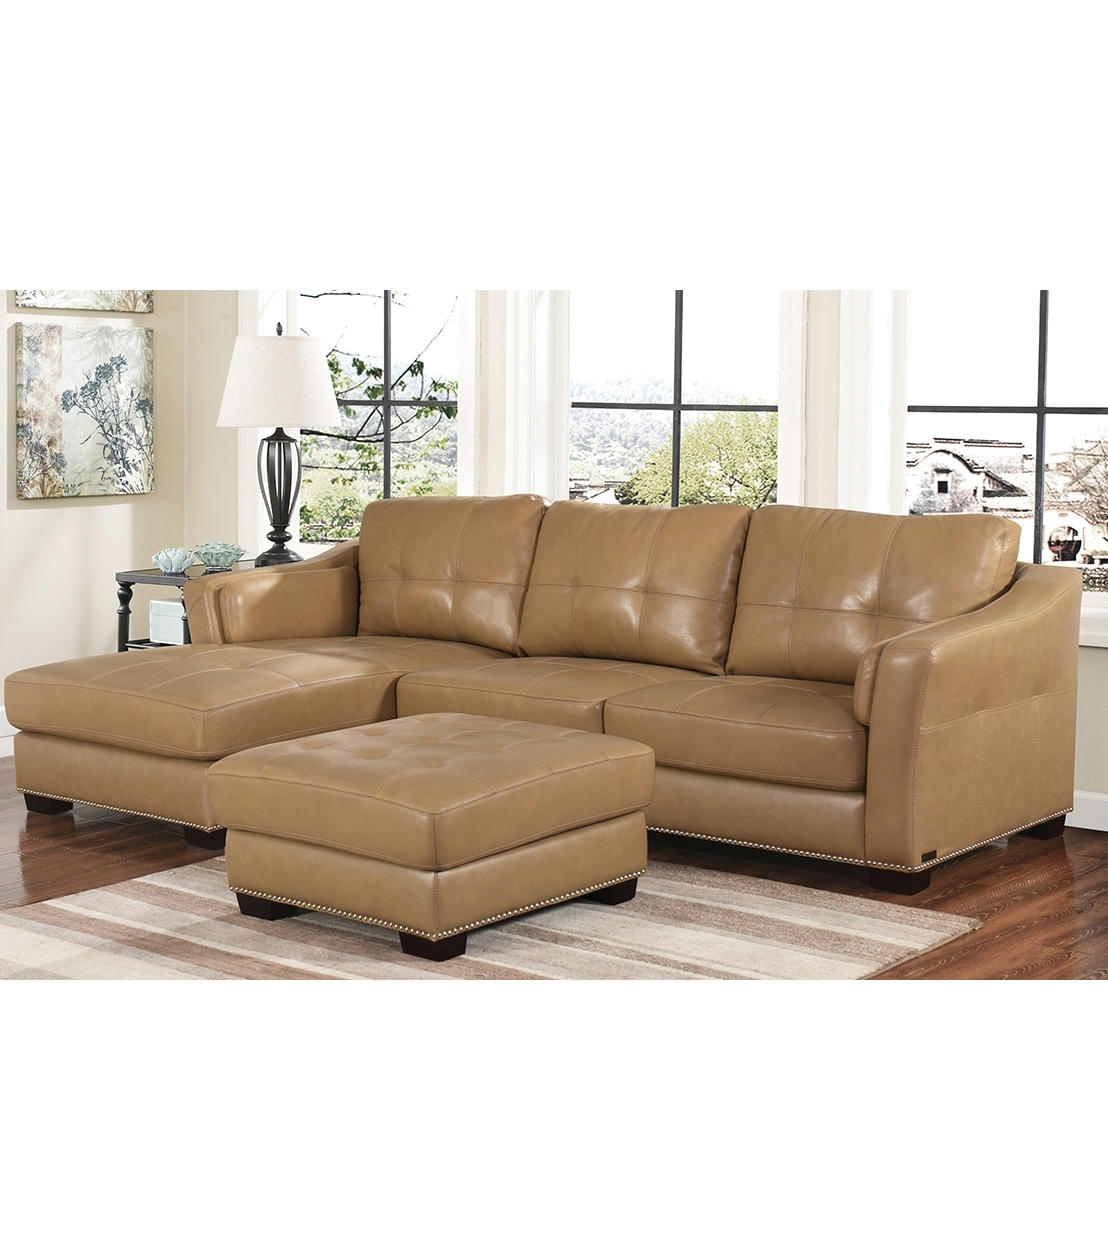 Sectionals : Chelsie Leather Sectional For Preferred Abbyson Sectional Sofas (View 16 of 20)